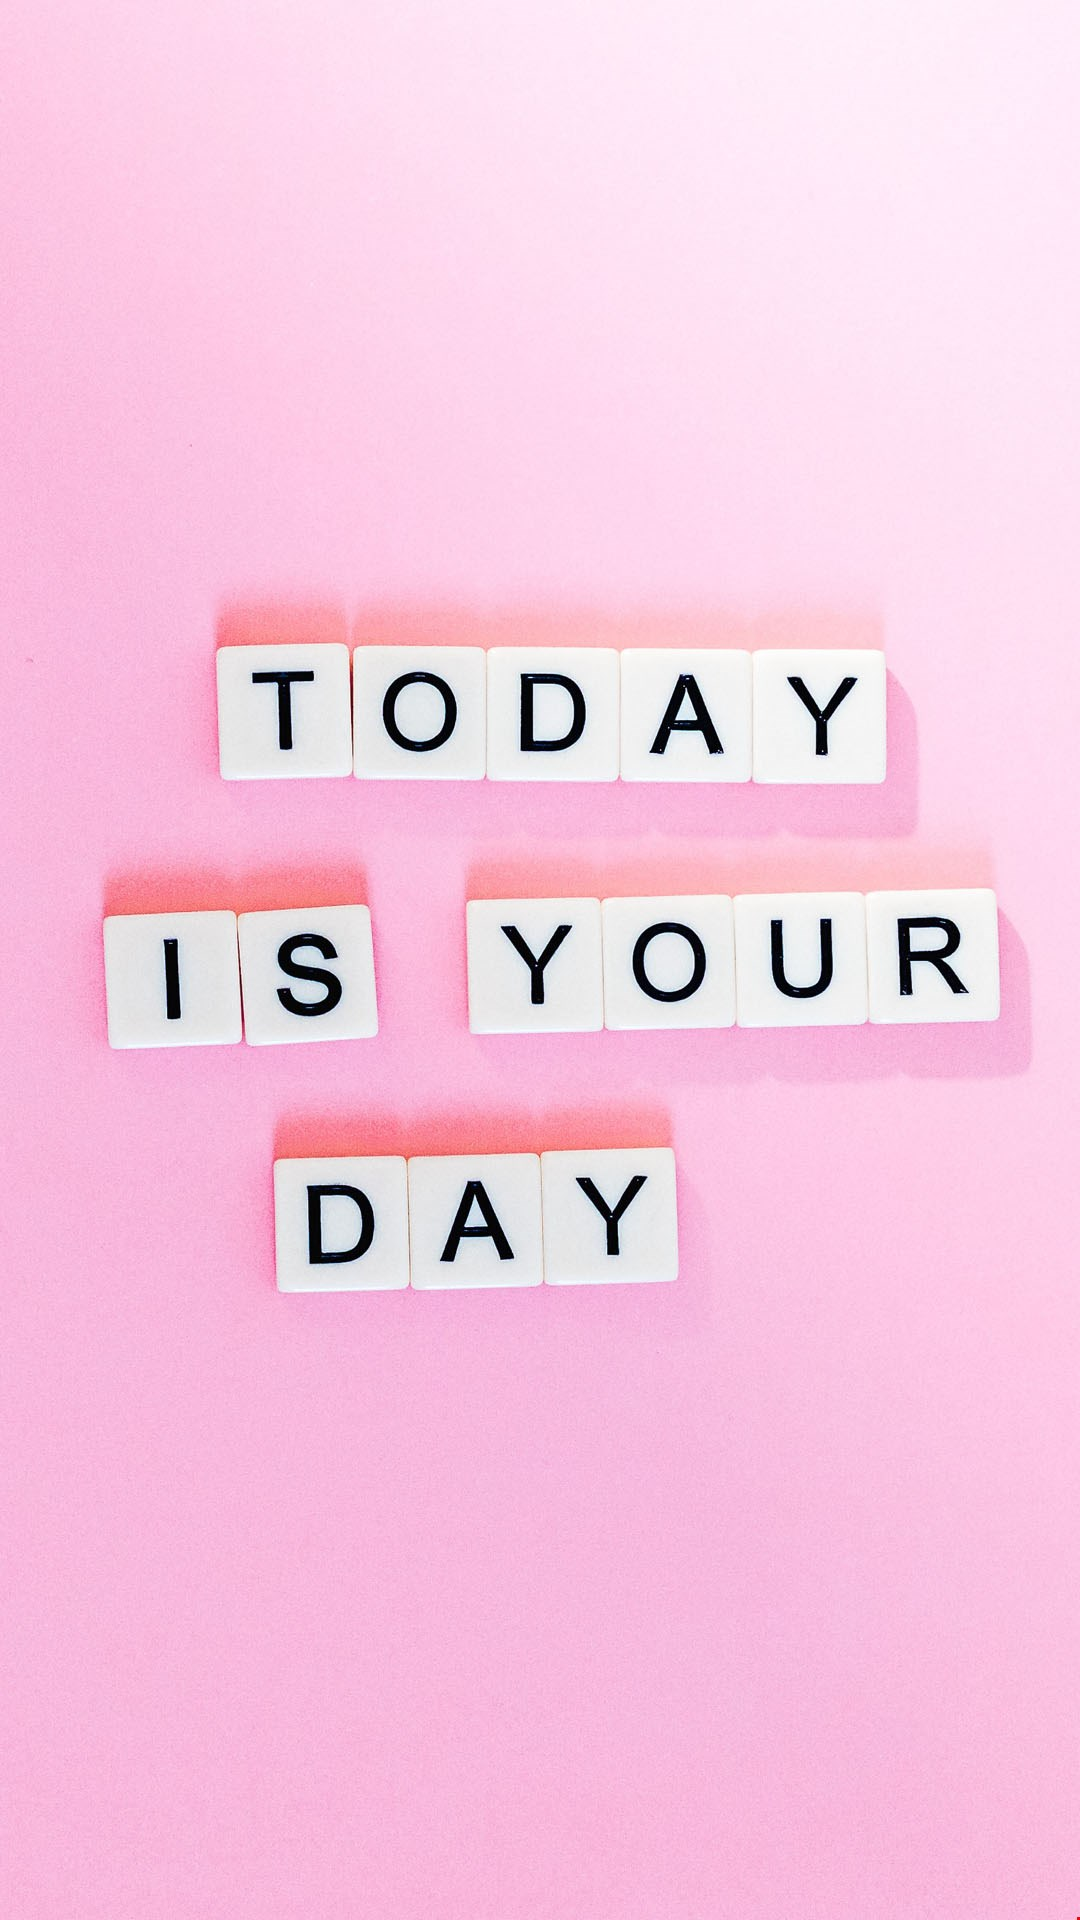 Wallpaper today is your day